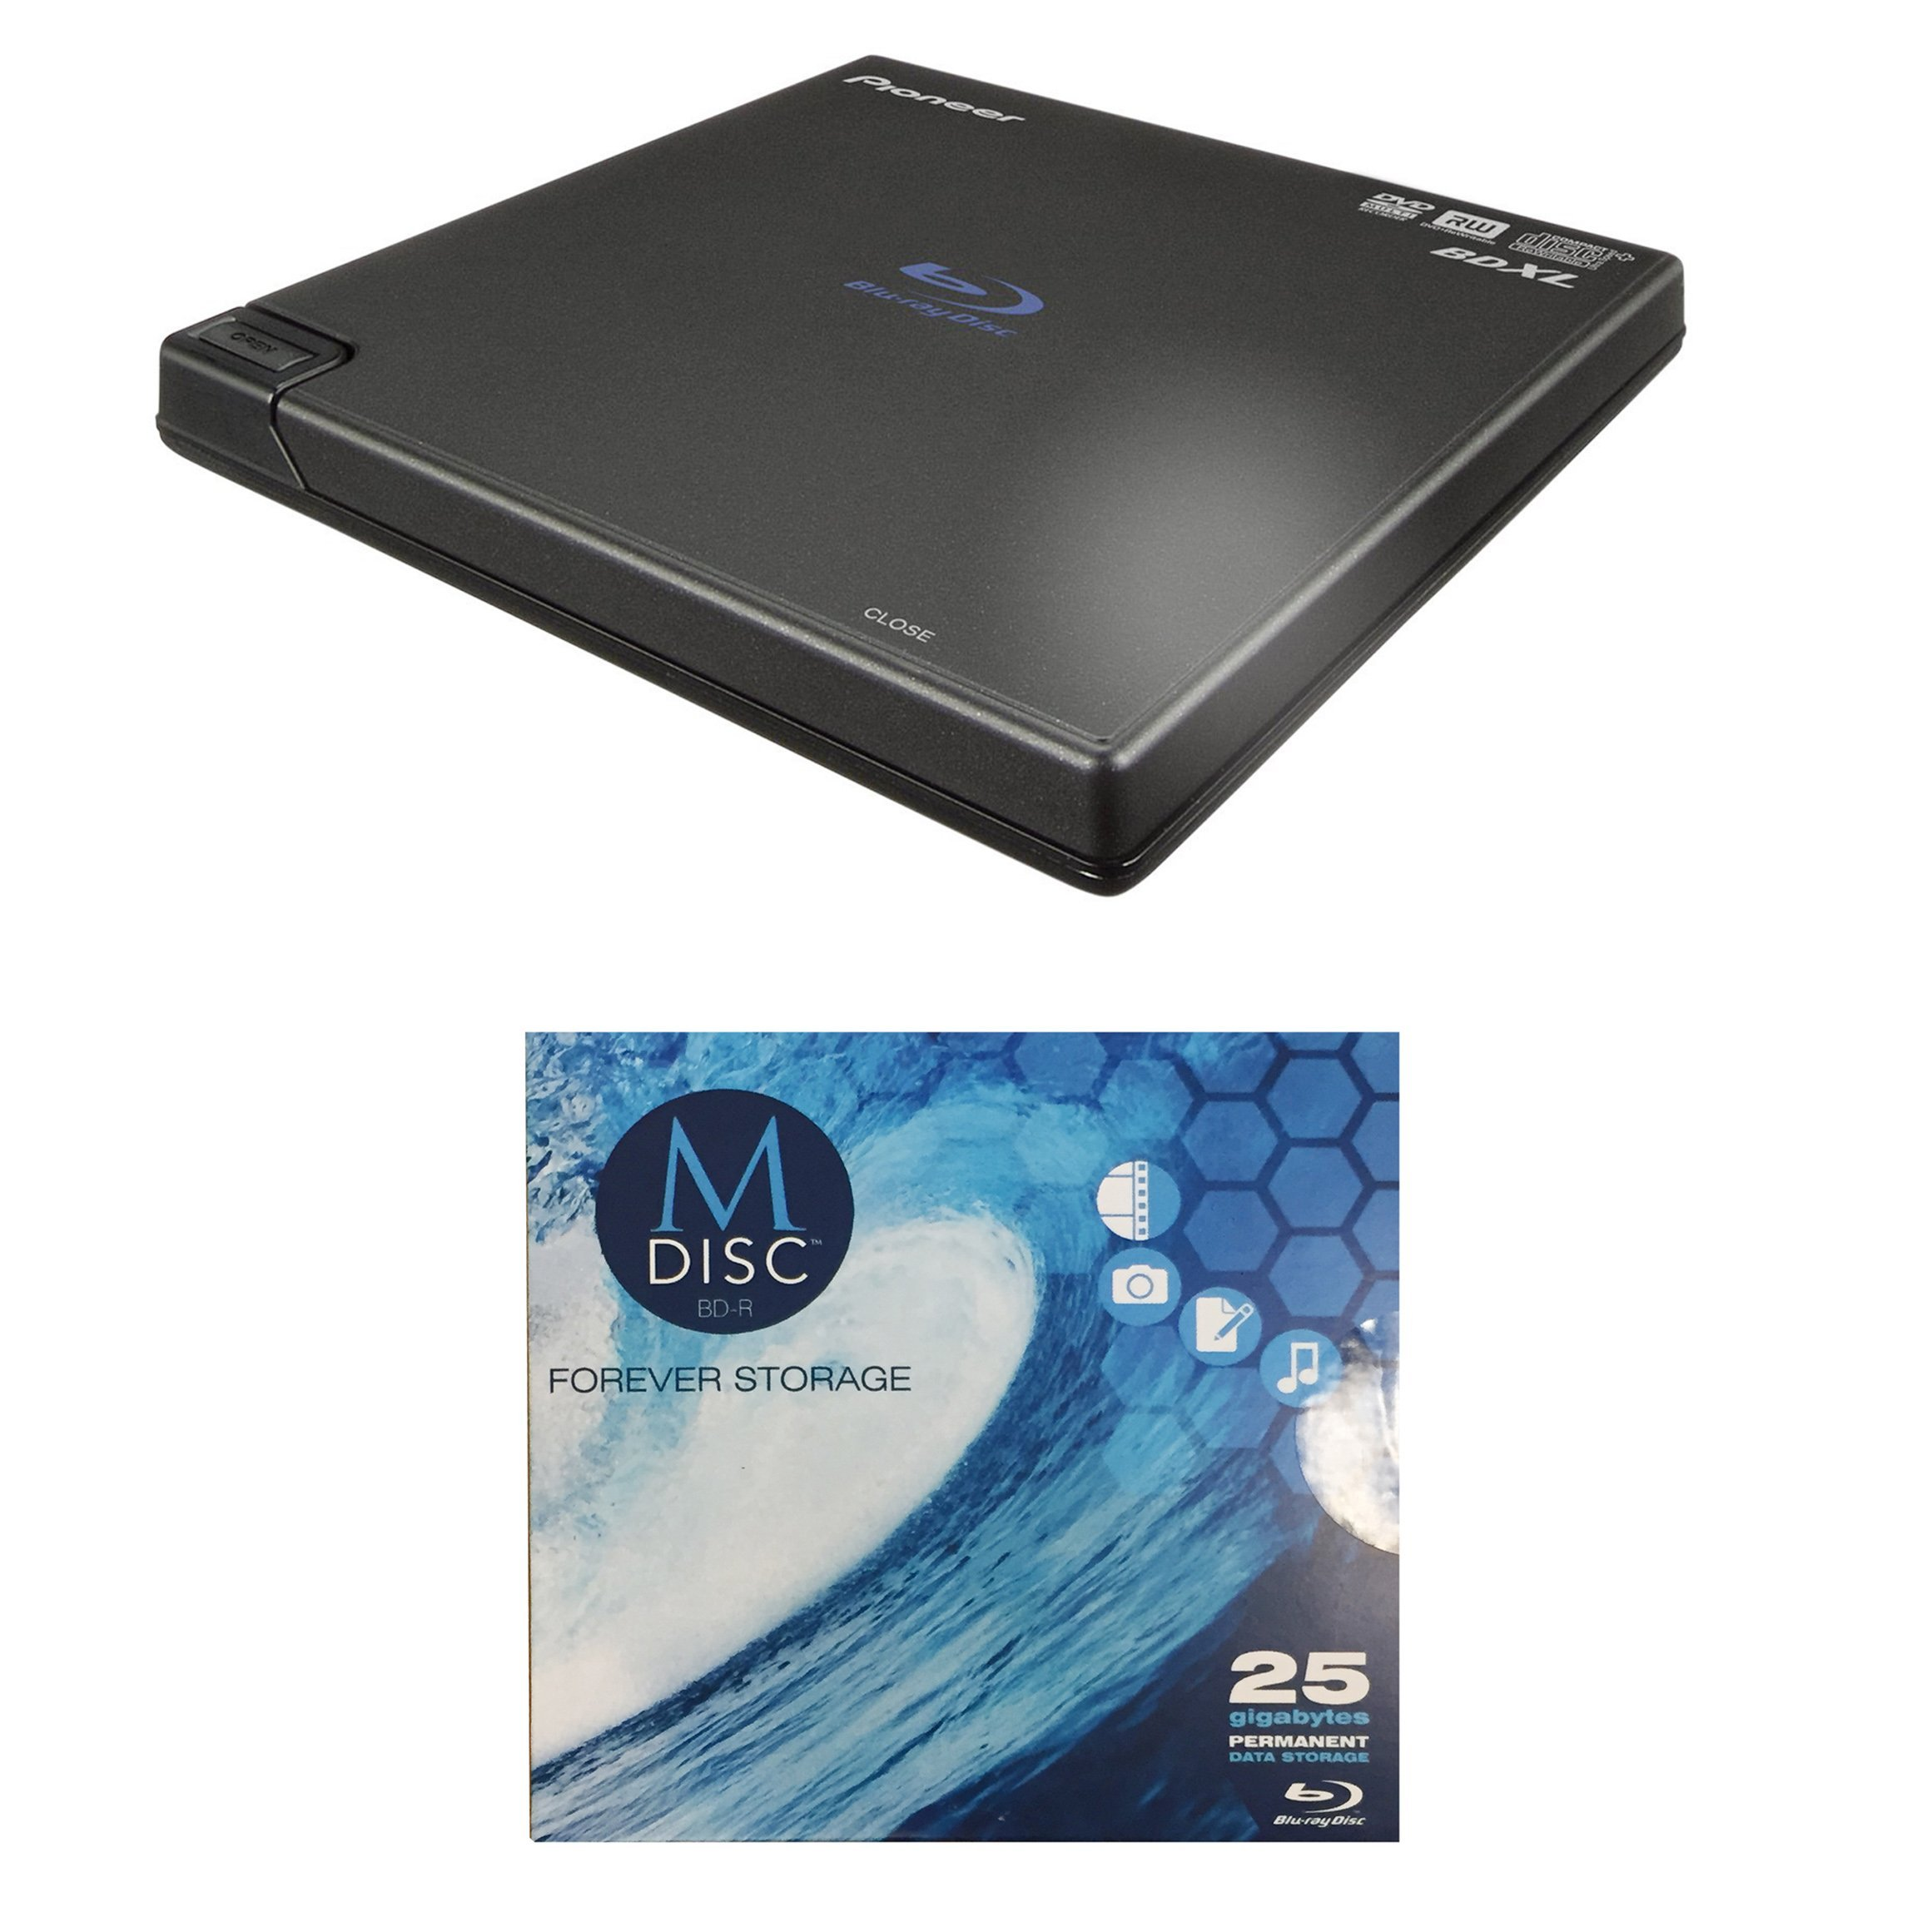 Pioneer BDR-XD05B 6X Slim Blu-ray Burner in Retail Box Bundle with CyberLink Software and 1pk M-Disc BD